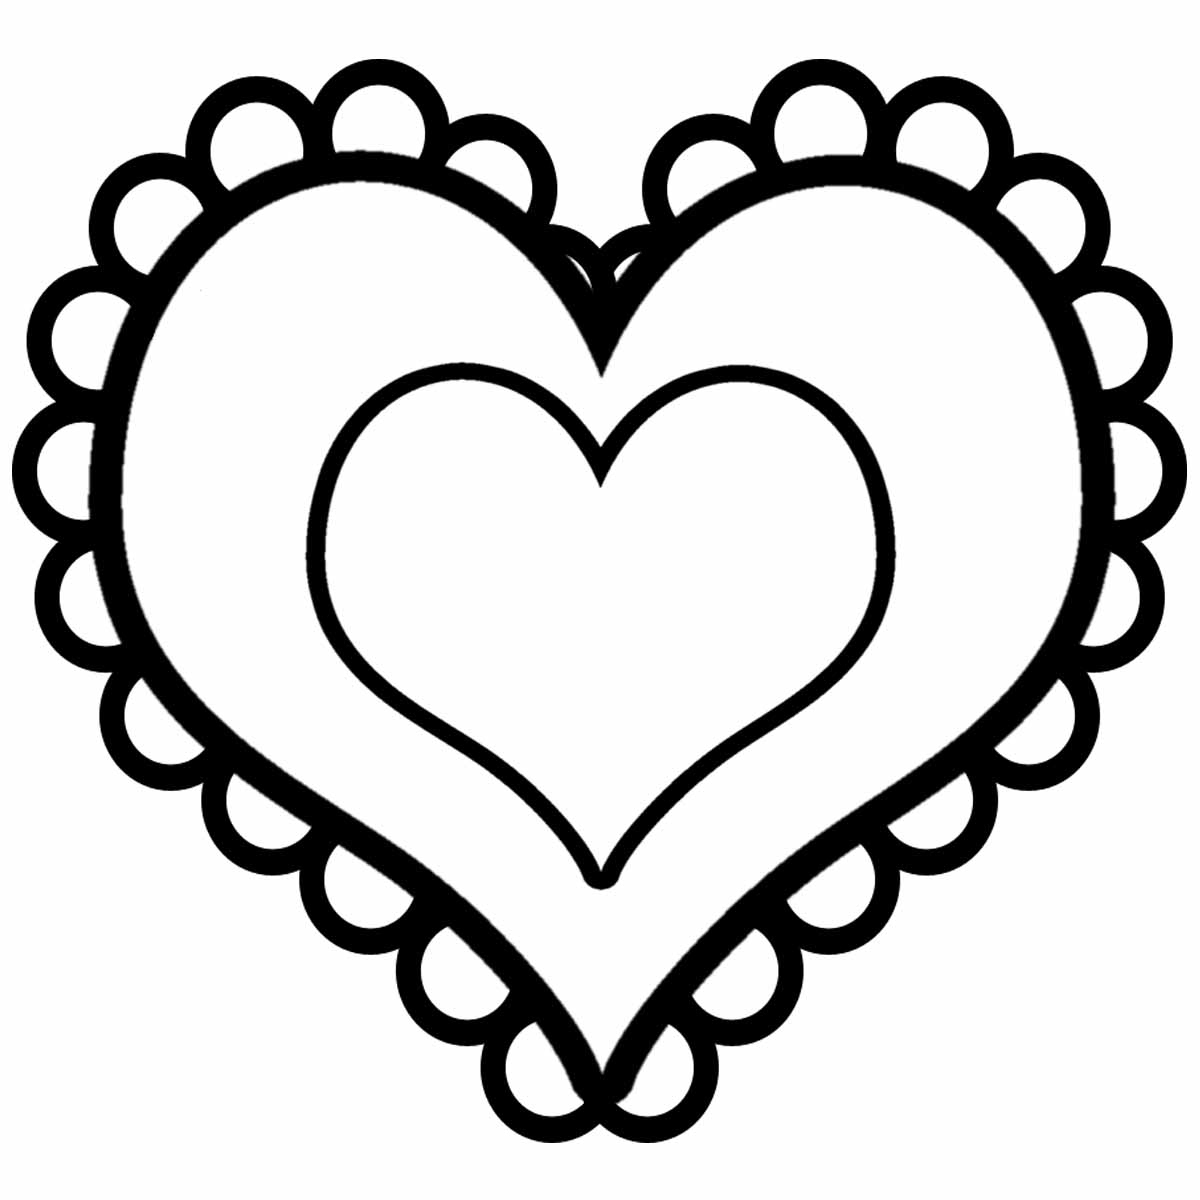 Coloring heart for kids